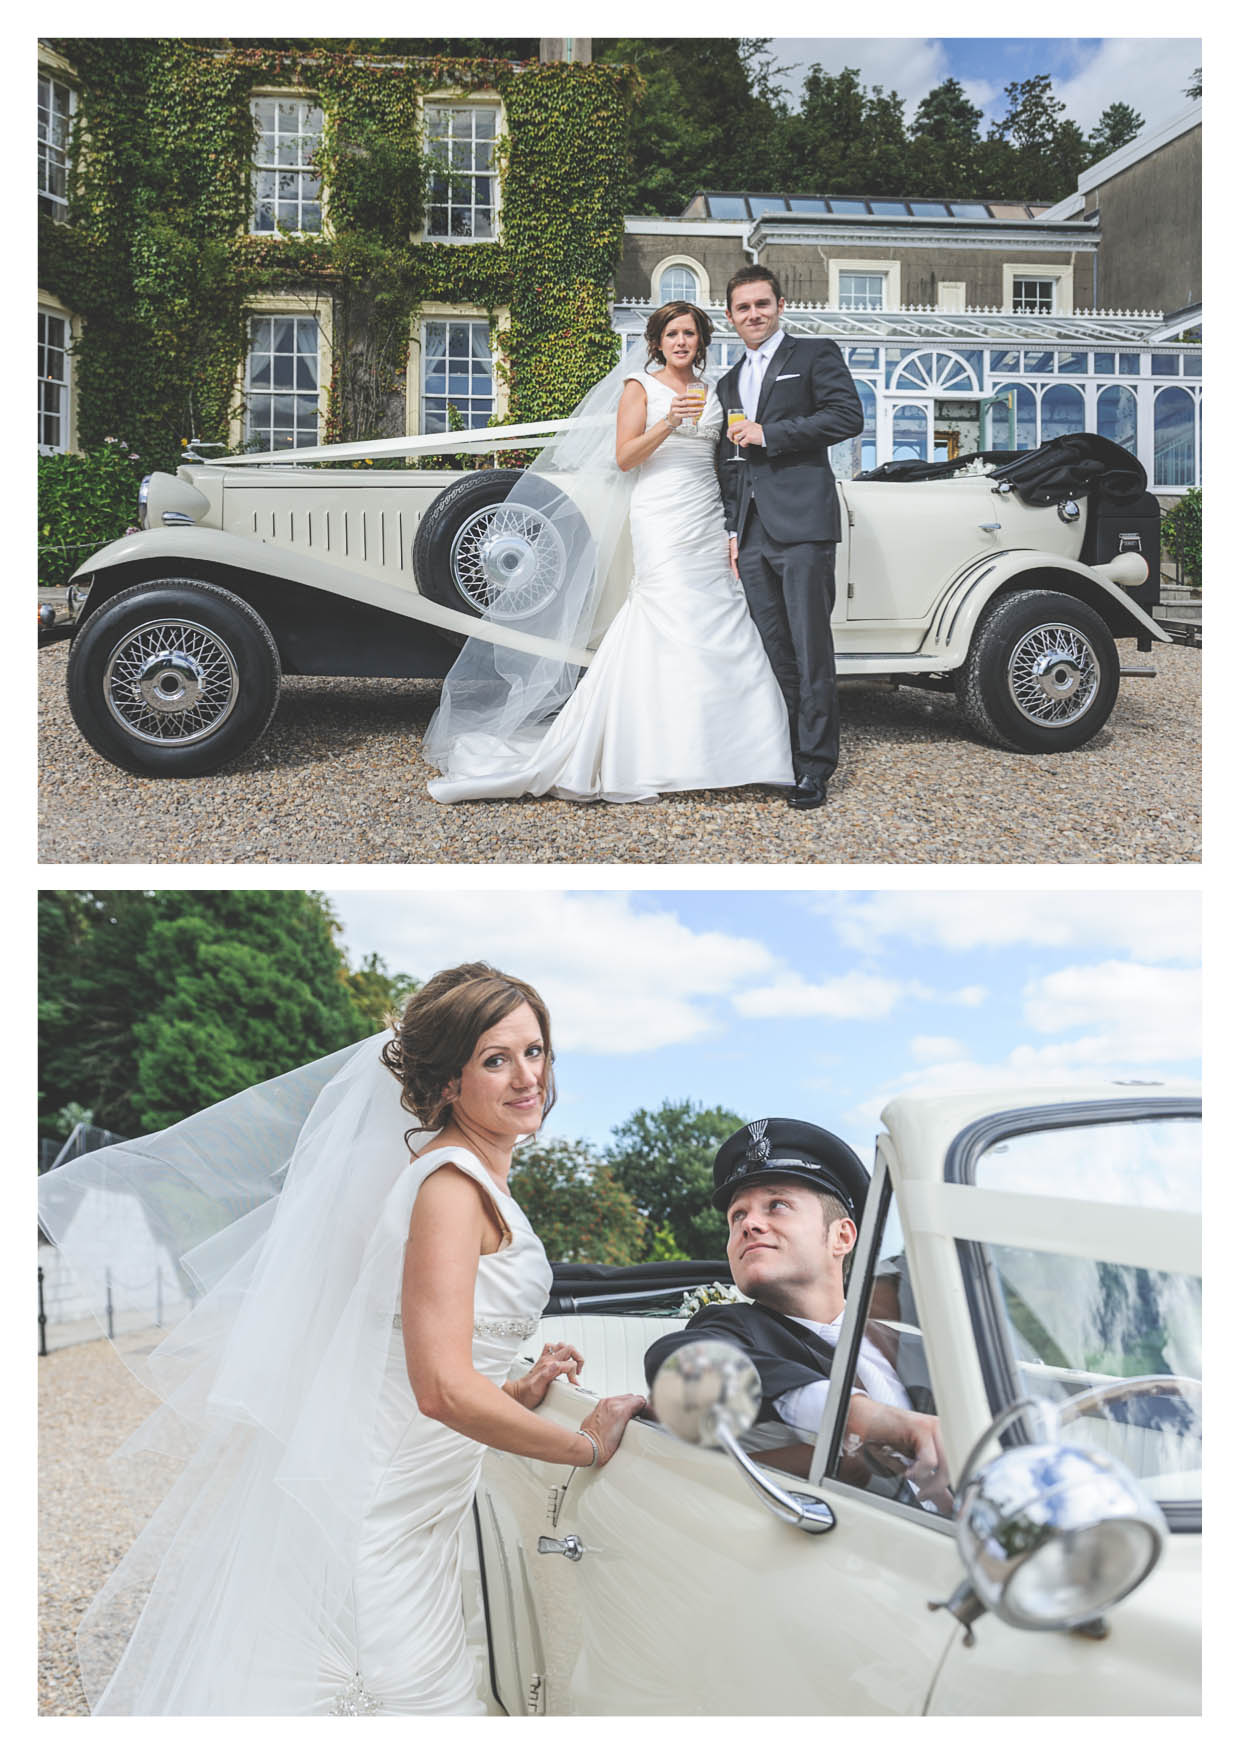 New House Hotel Wedding Photographer